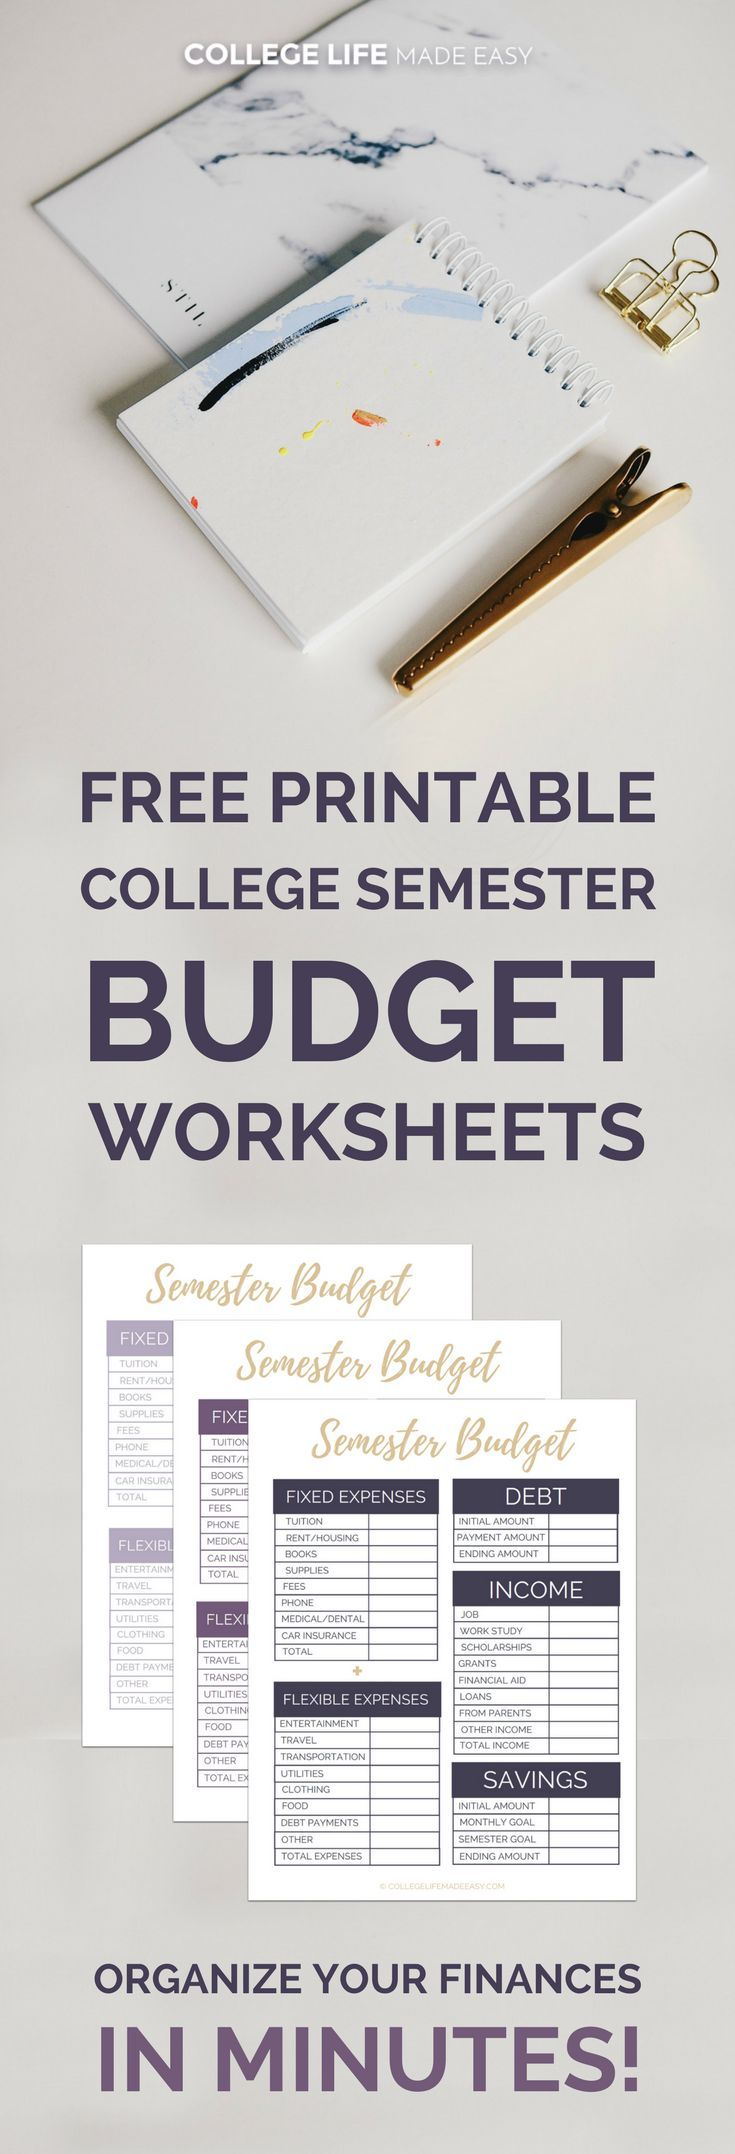 Free Printable College Semester Budget Worksheets: Organize Your Finances in Minutes! | Free College Student Budget Template | Semester Planner Tracker | via @esycollegelife